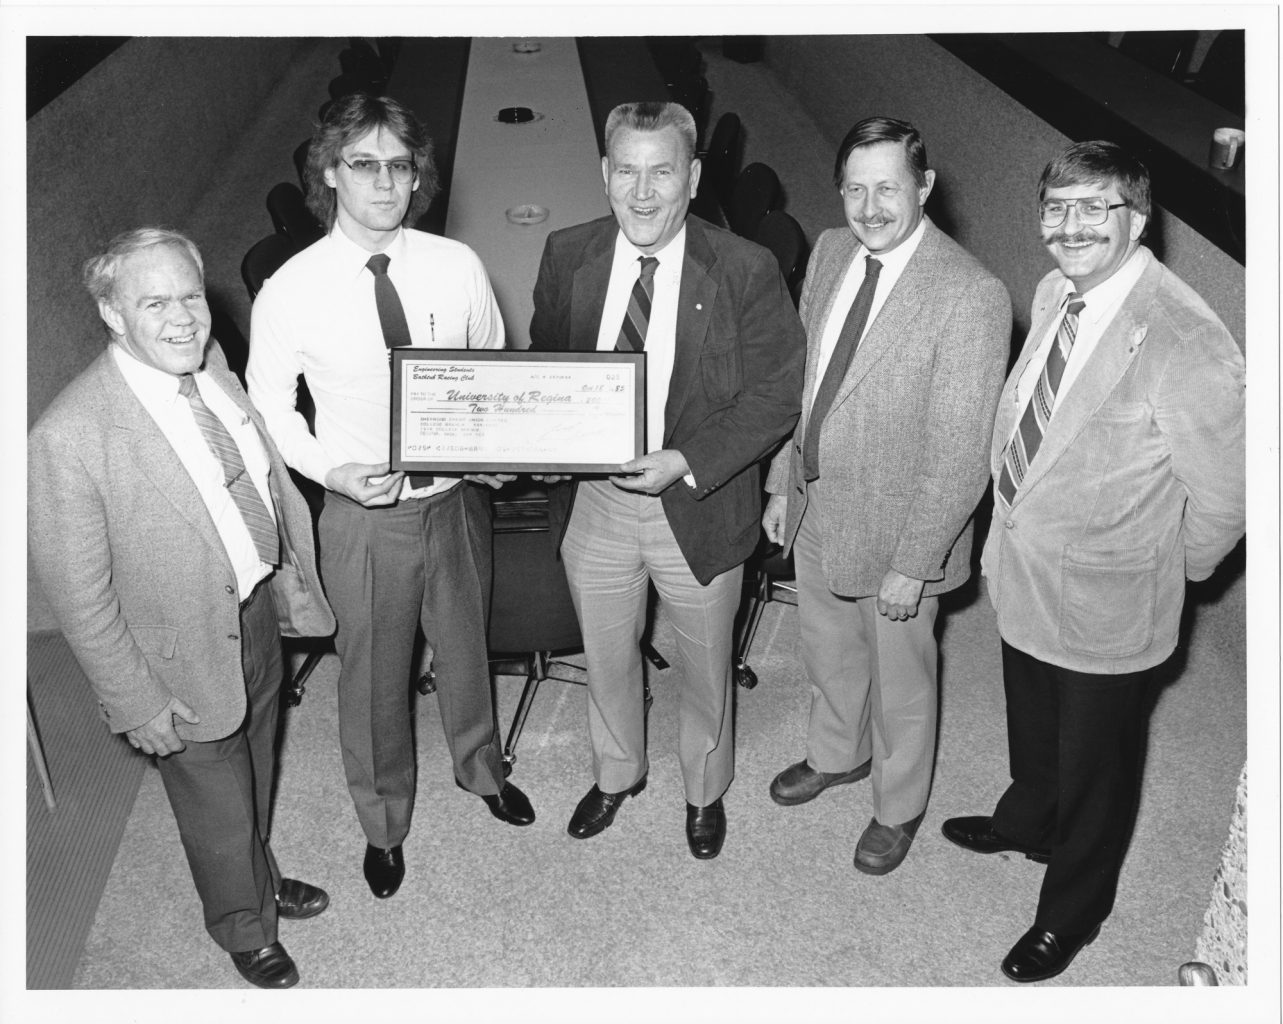 Engineering faculty members and then U of R president Lloyd Barber present the Bathtub Club cheque in 1985.